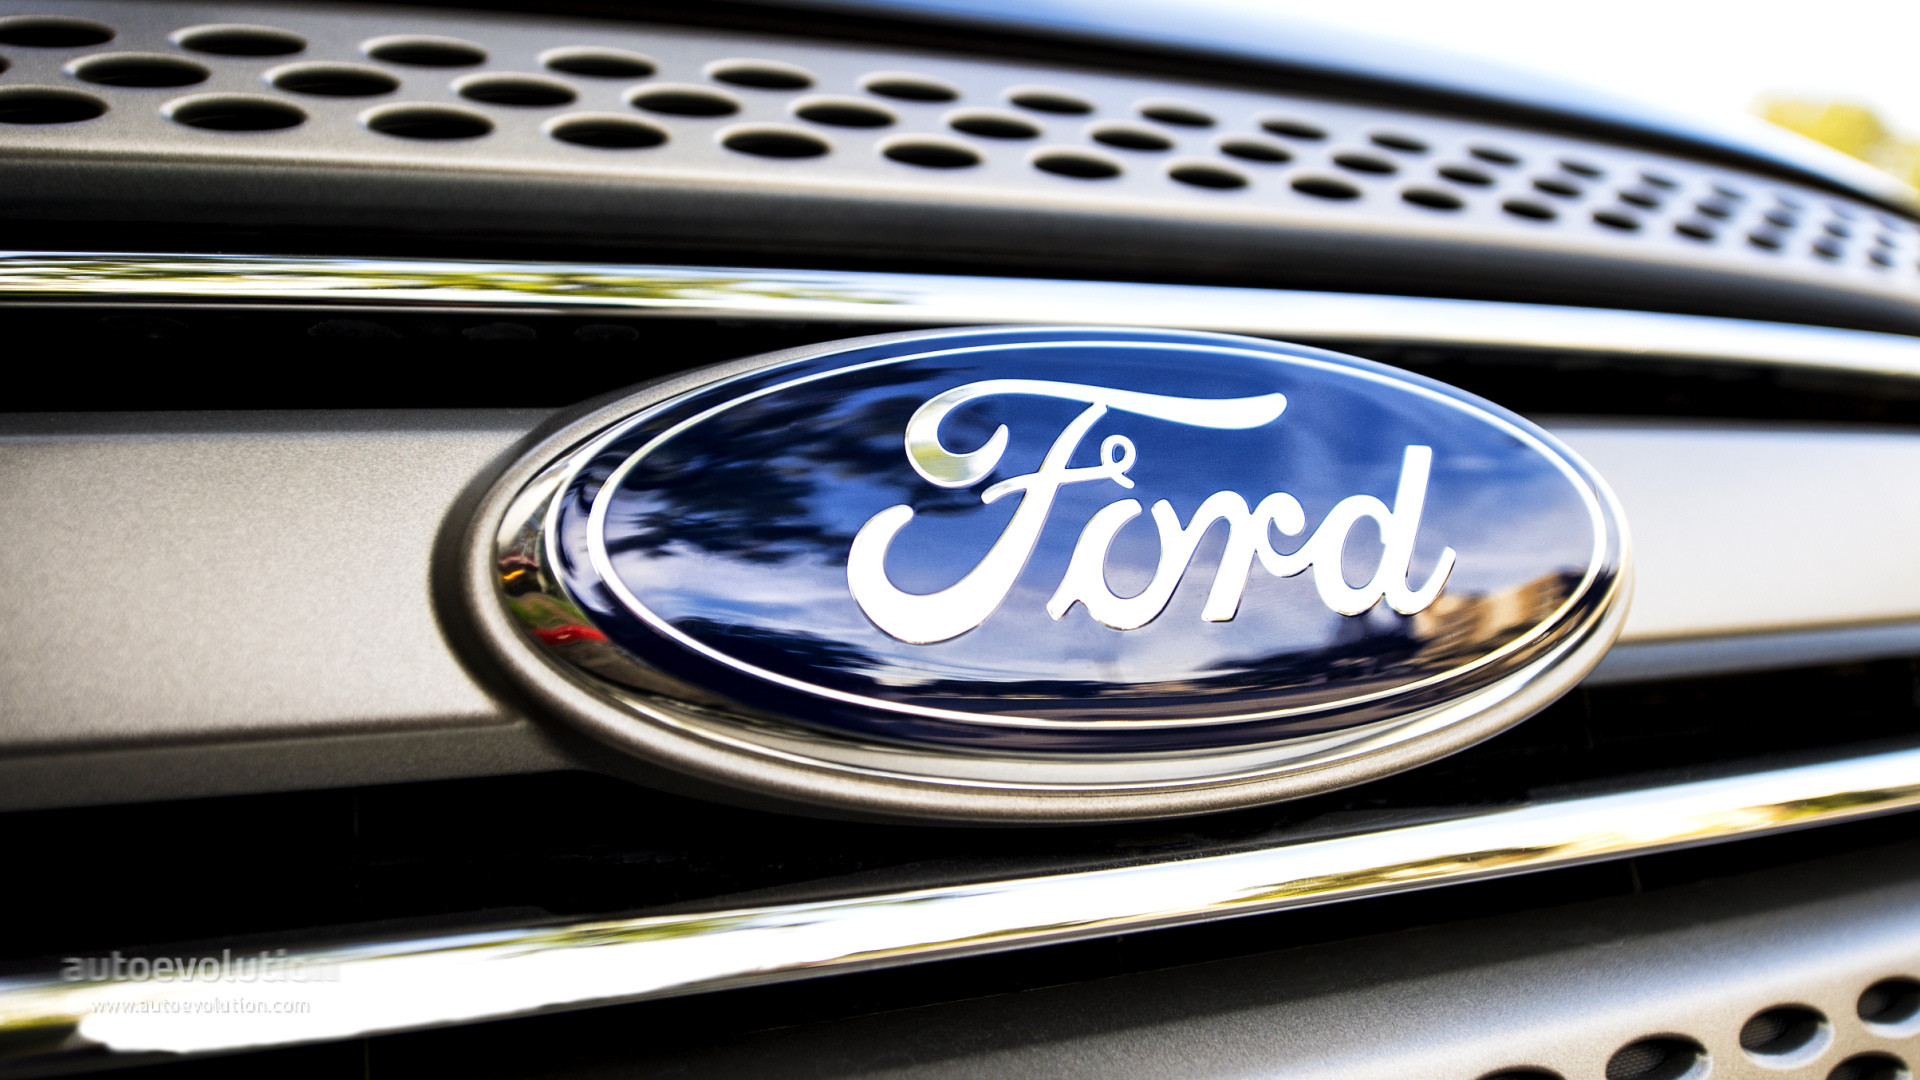 High Preformence Ford Wallpaper 800x384: Cool Ford Logo Wallpapers (61+ Images